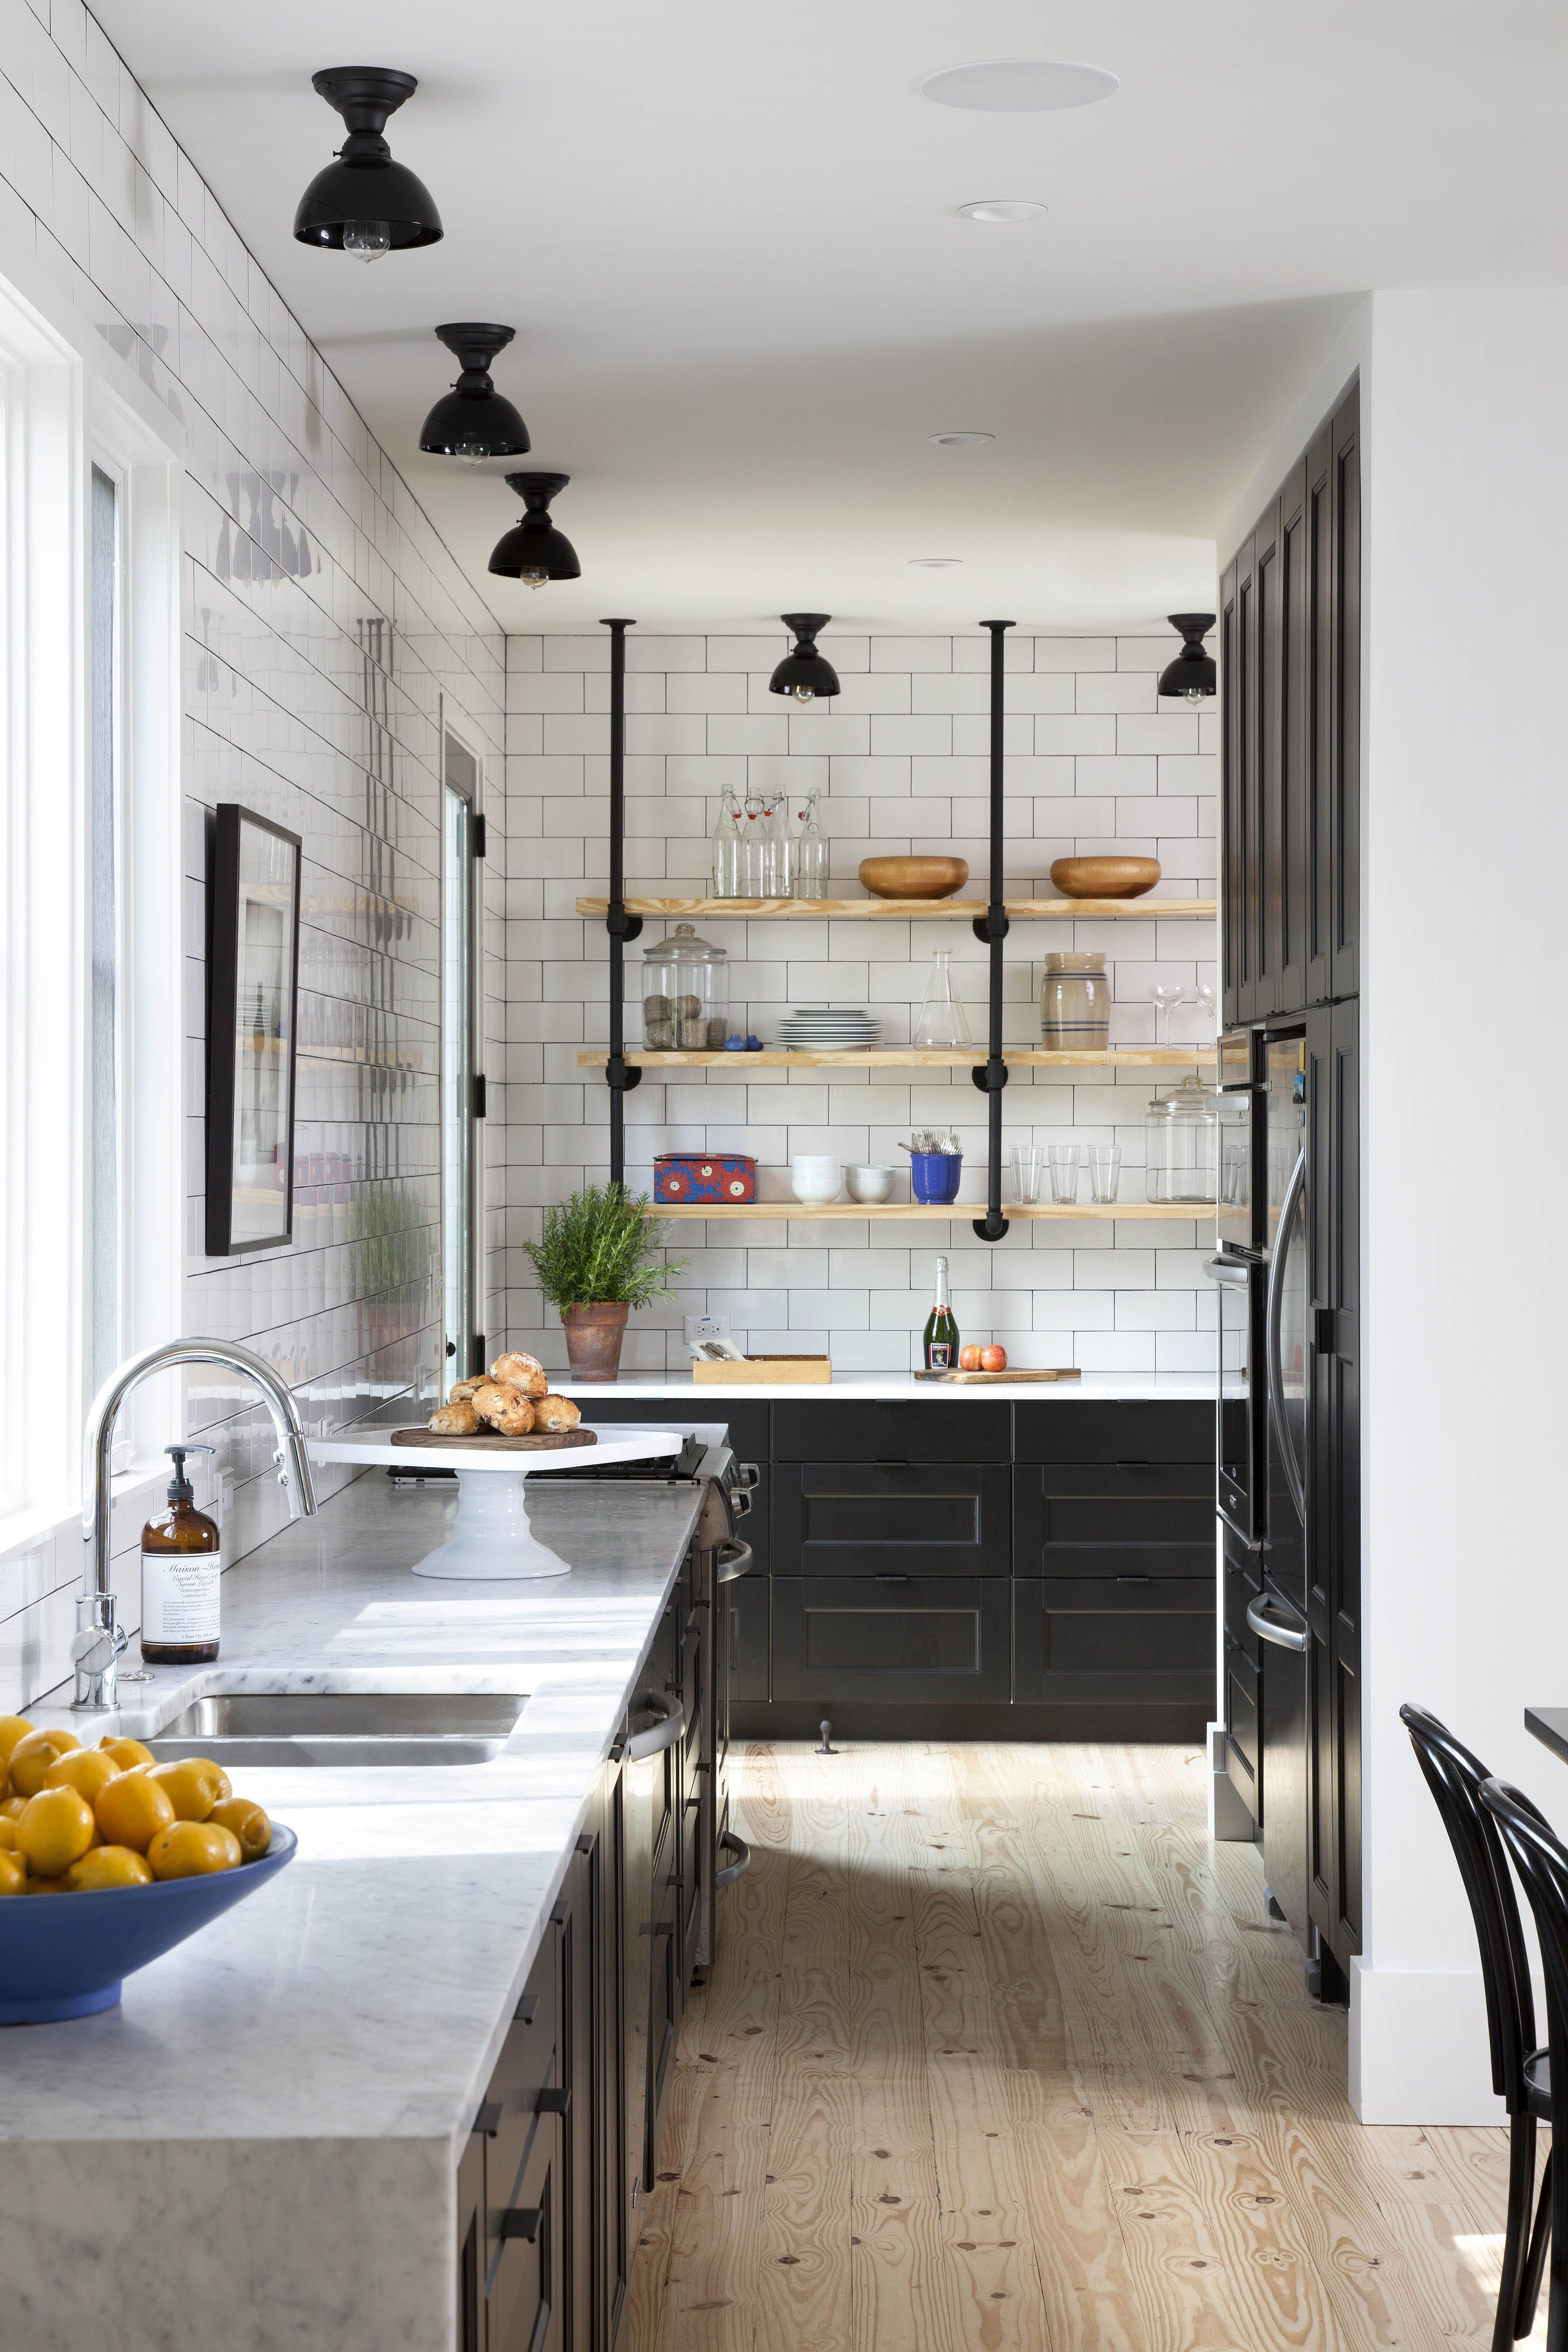 Moderne Küchenregale Modern Kitchen With White Subway Tiles And Black Cabinets I